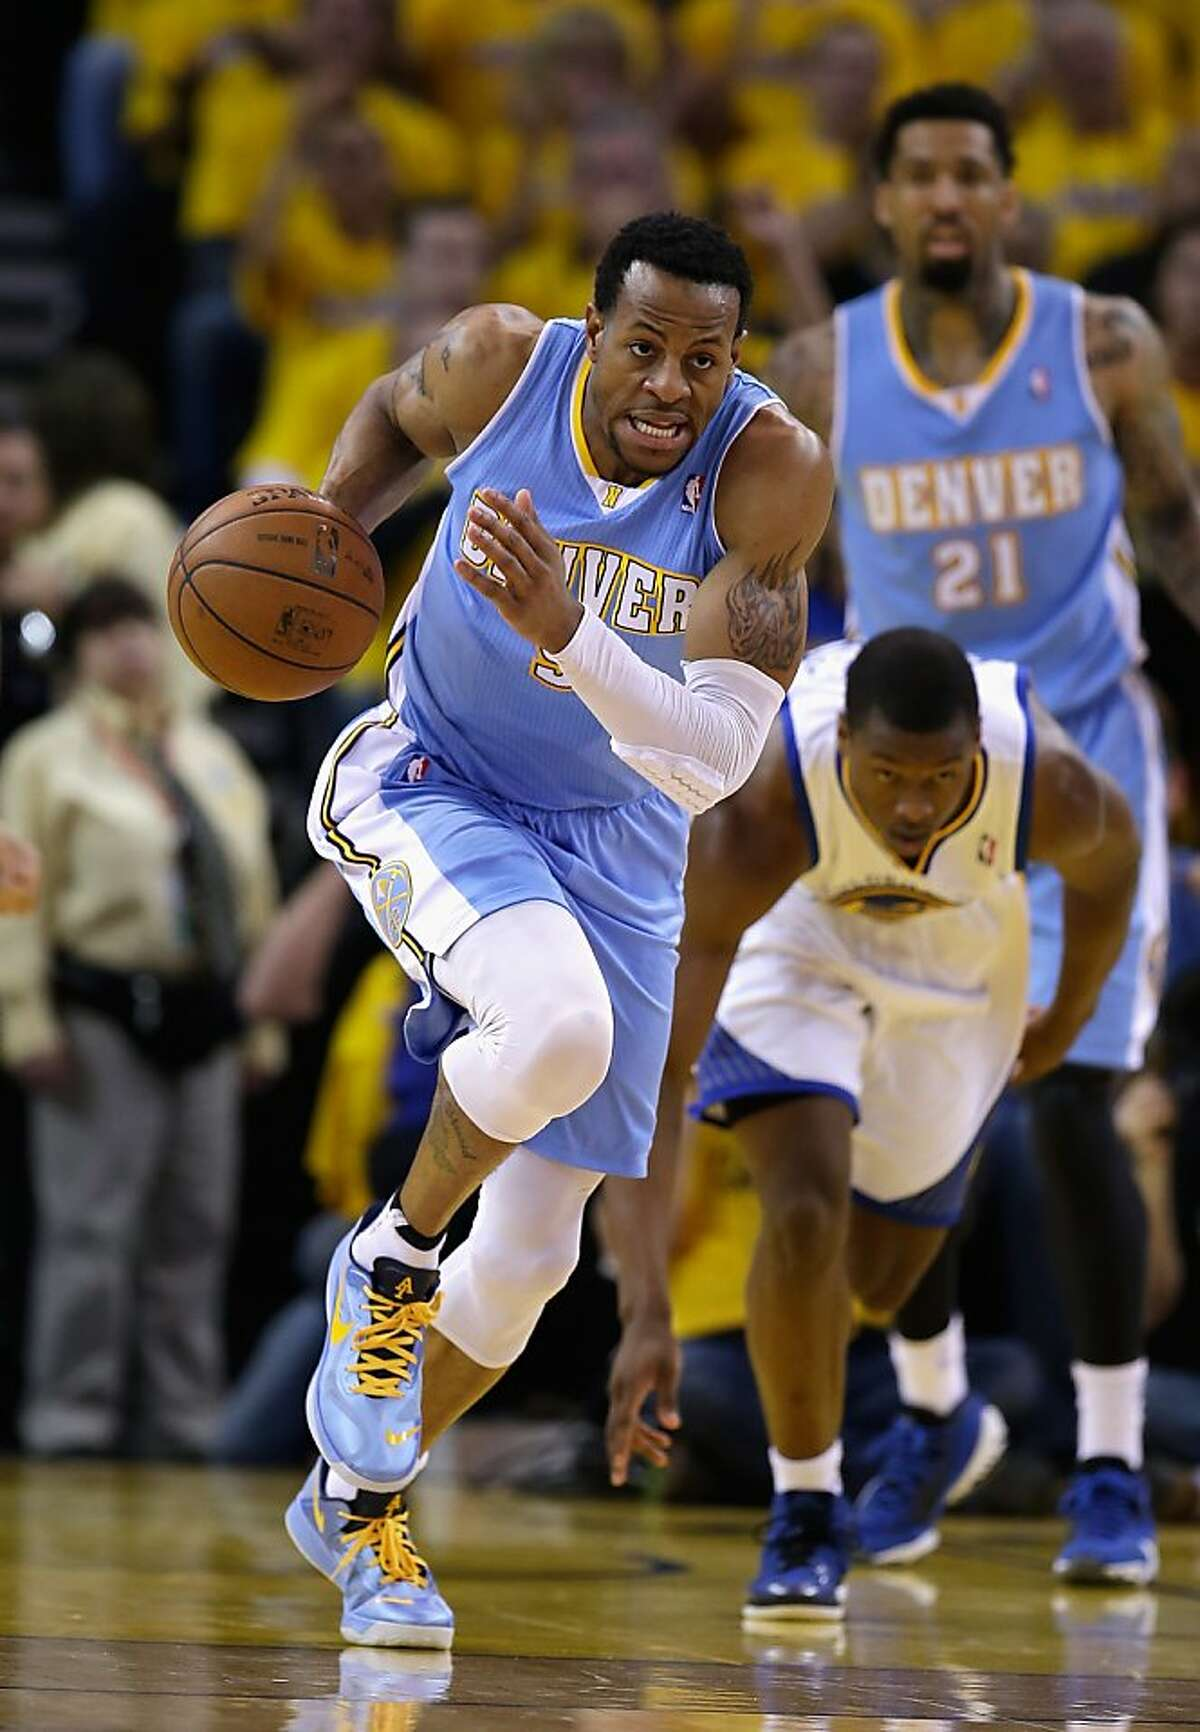 OAKLAND, CA - APRIL 26: Andre Iguodala #9 of the Denver Nuggets dribbles up court during their game against the Golden State Warriors during Game Three of the Western Conference Quarterfinals of the 2013 NBA Playoffs at ORACLE Arena on April 26, 2013 in Oakland, California. NOTE TO USER: User expressly acknowledges and agrees that, by downloading and or using this photograph, User is consenting to the terms and conditions of the Getty Images License Agreement. (Photo by Ezra Shaw/Getty Images)